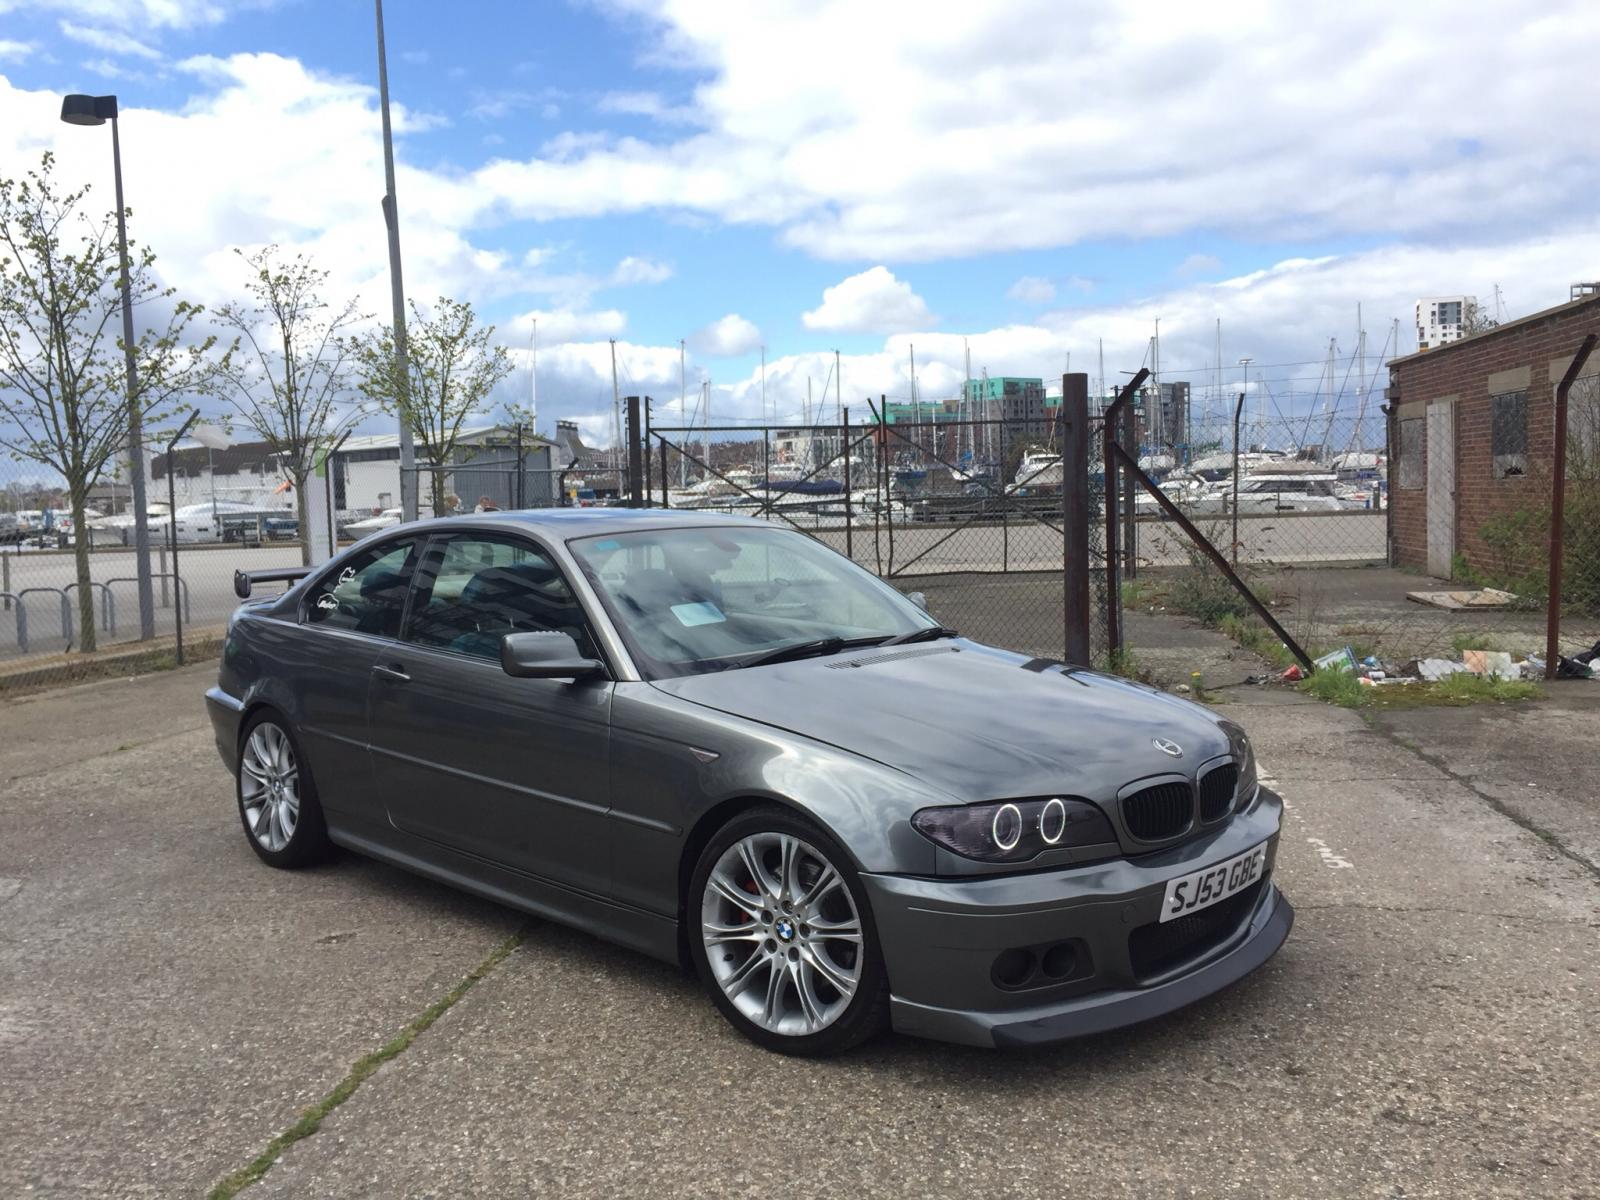 hight resolution of my wrapped bmw e46 330ci after tinting headlights